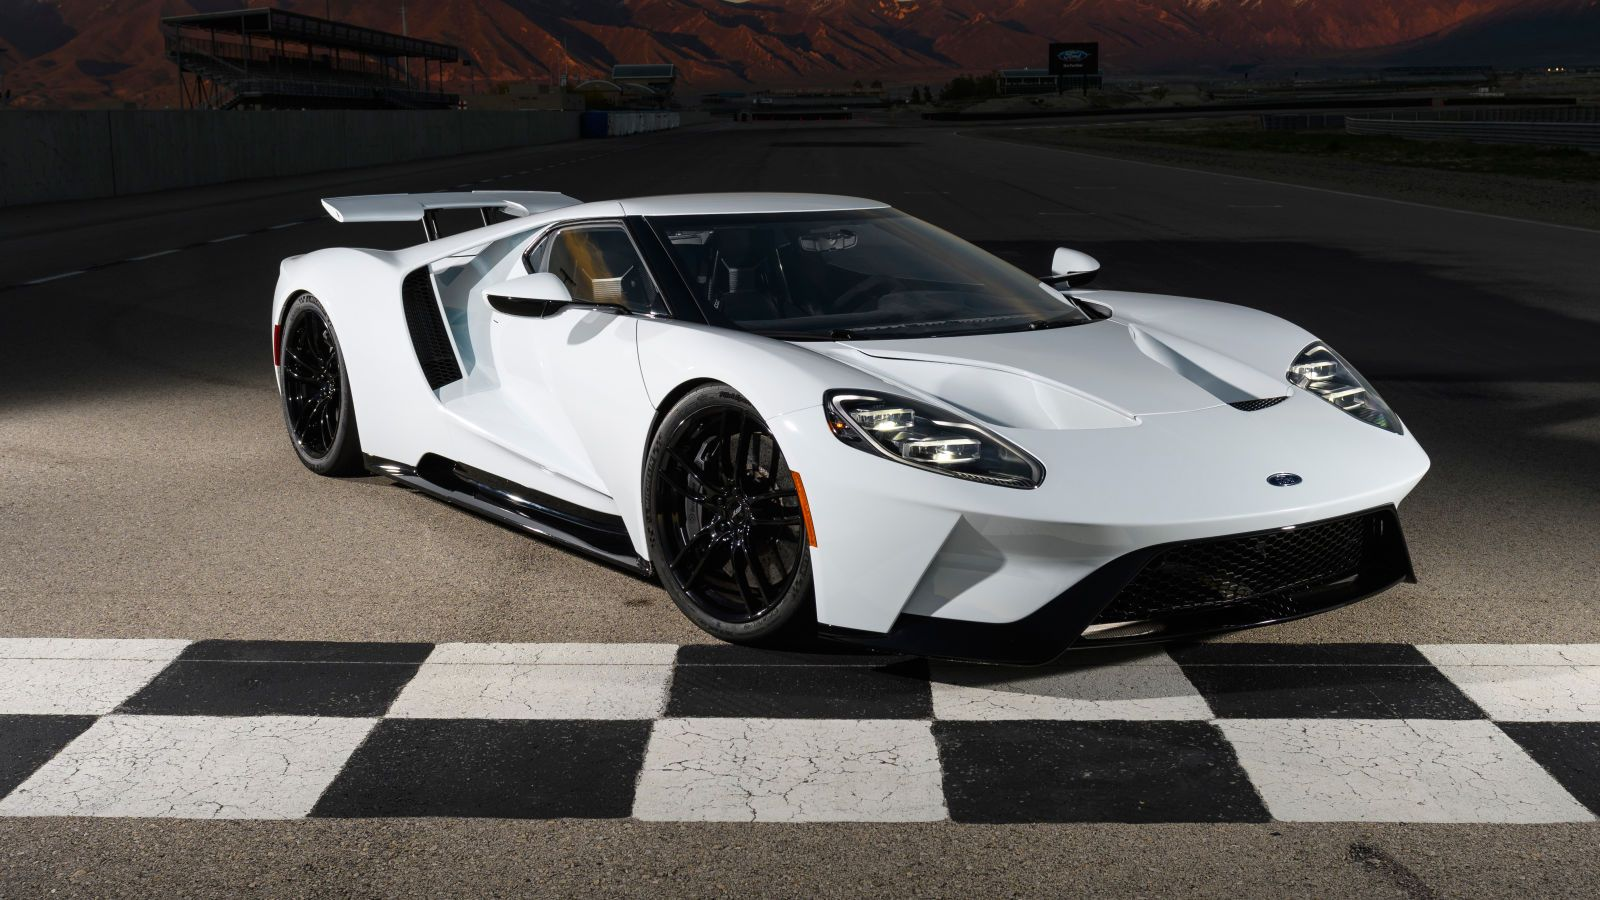 Here S What It S Like To Have Your Ford Gt Application Rejected Ford Gt Ford Gt40 Ford